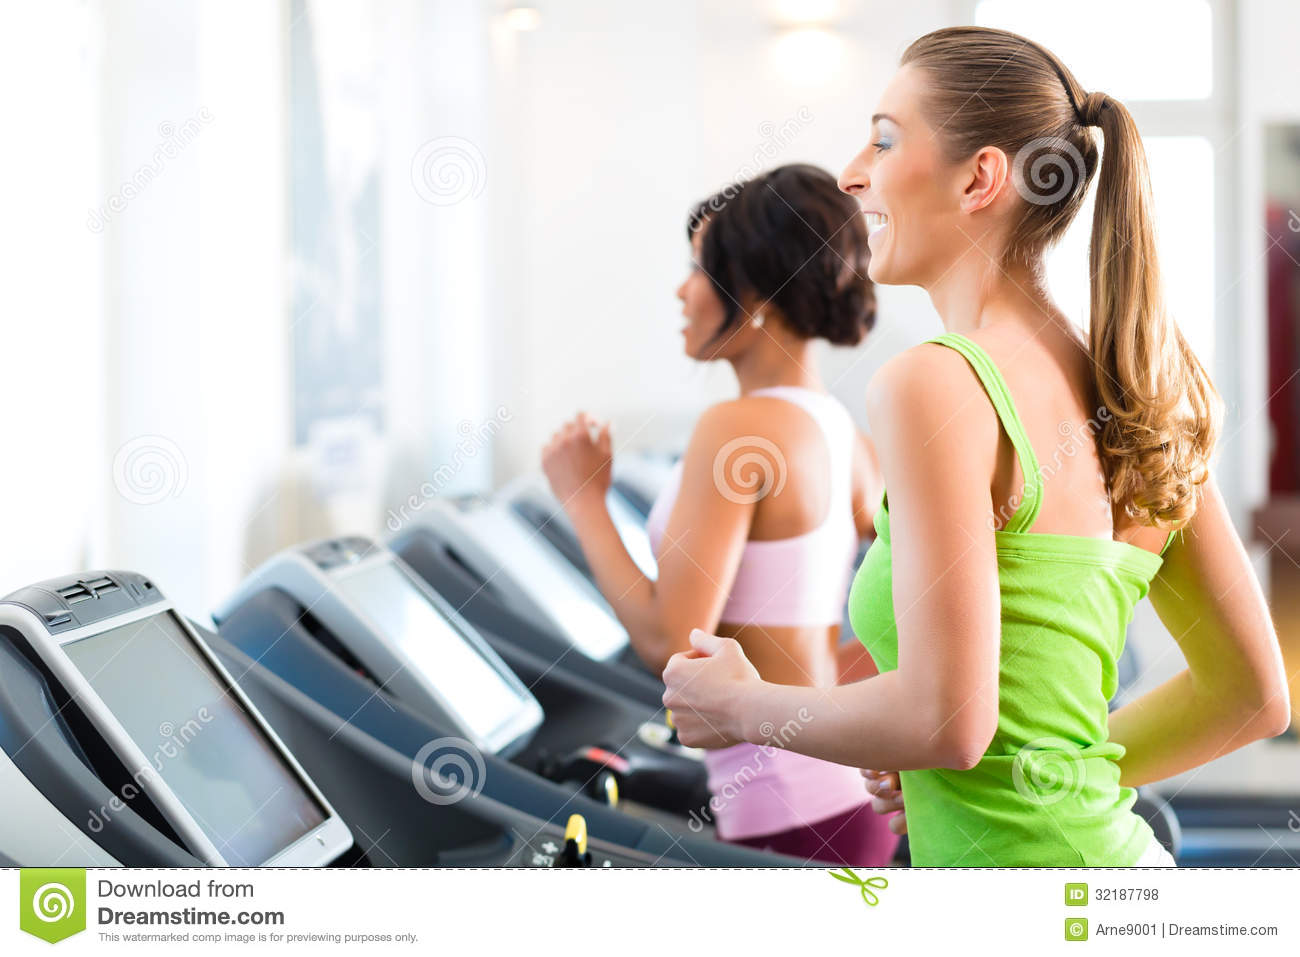 People in sport gym on treadmill running stock photo for Gimnasio sport gym